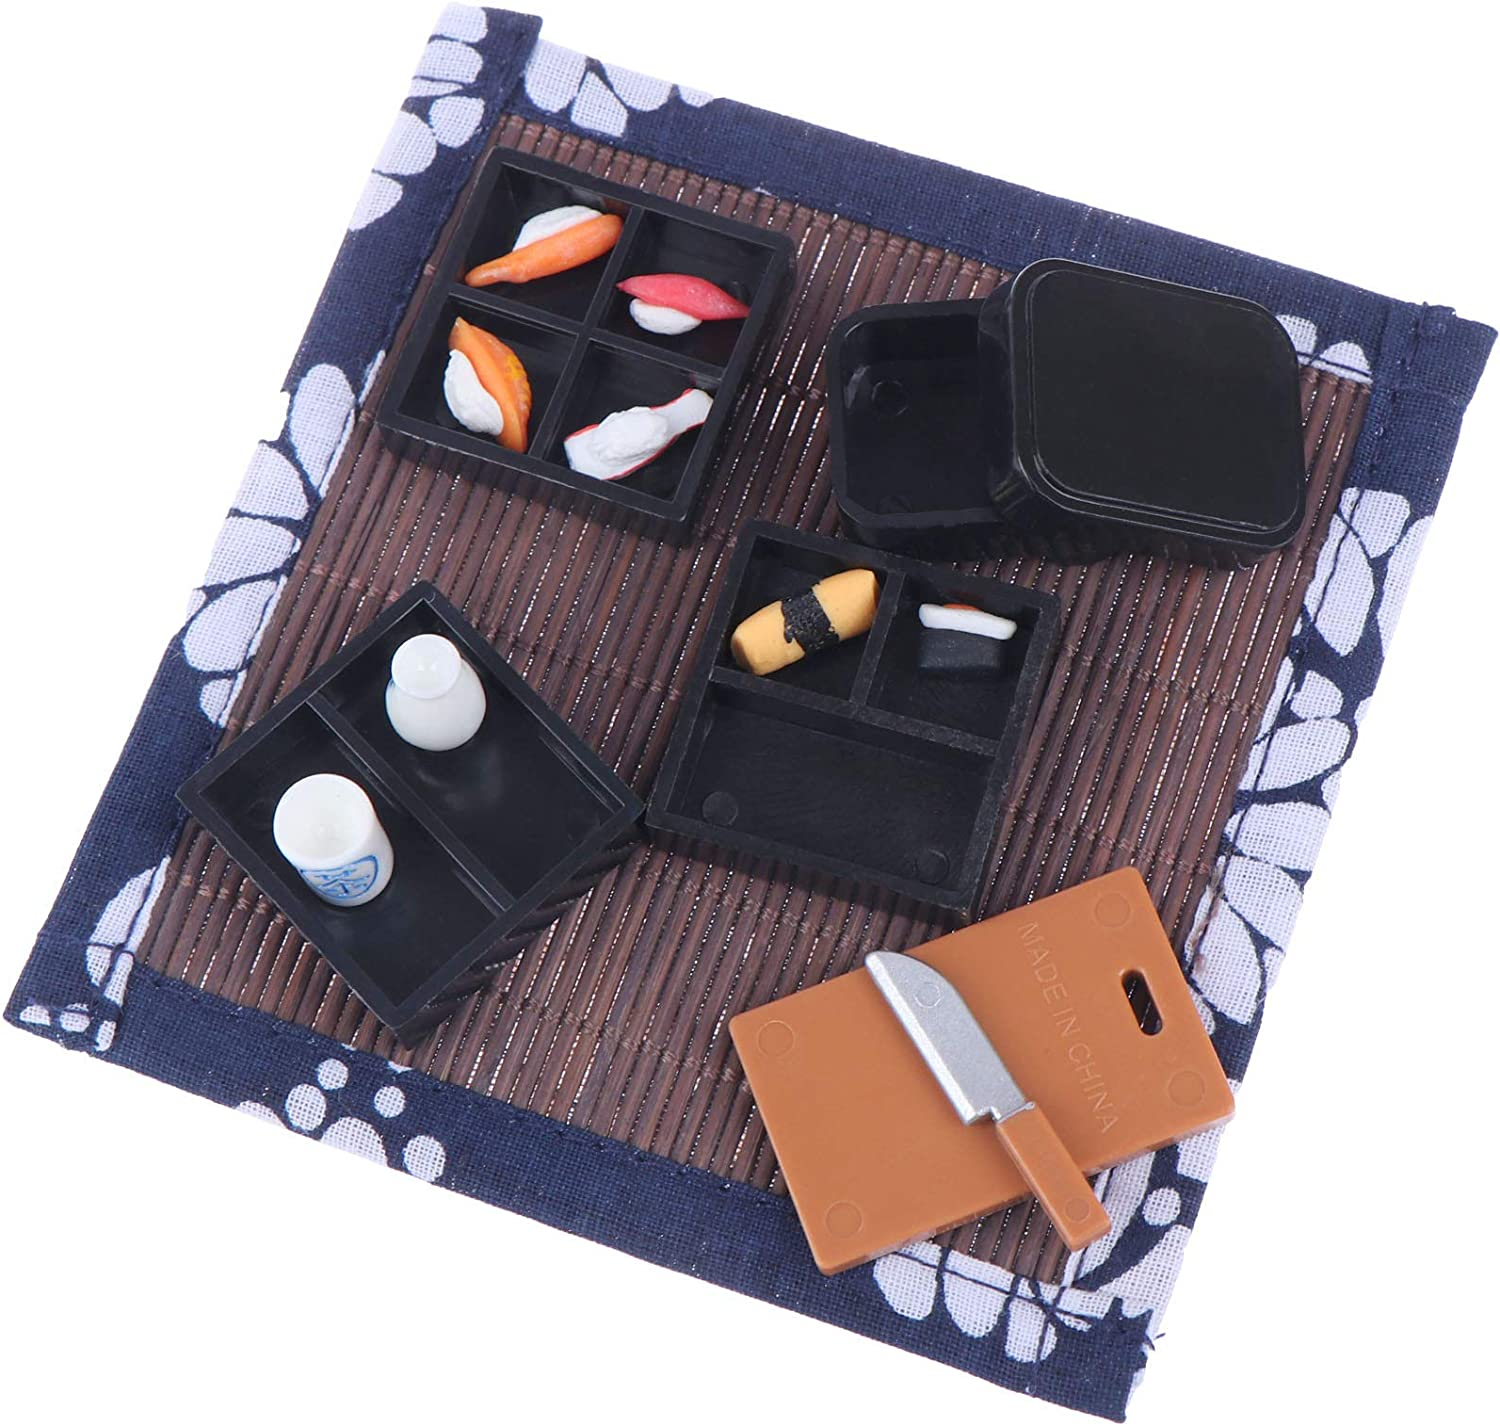 Dollhouse Miniature Food Set Sushi Miniature Figurines Japanese Food Sushi Toys Accessories Doll House Tableware Decoration Kids Pretend Play Dollhouse Kitchen Accessories